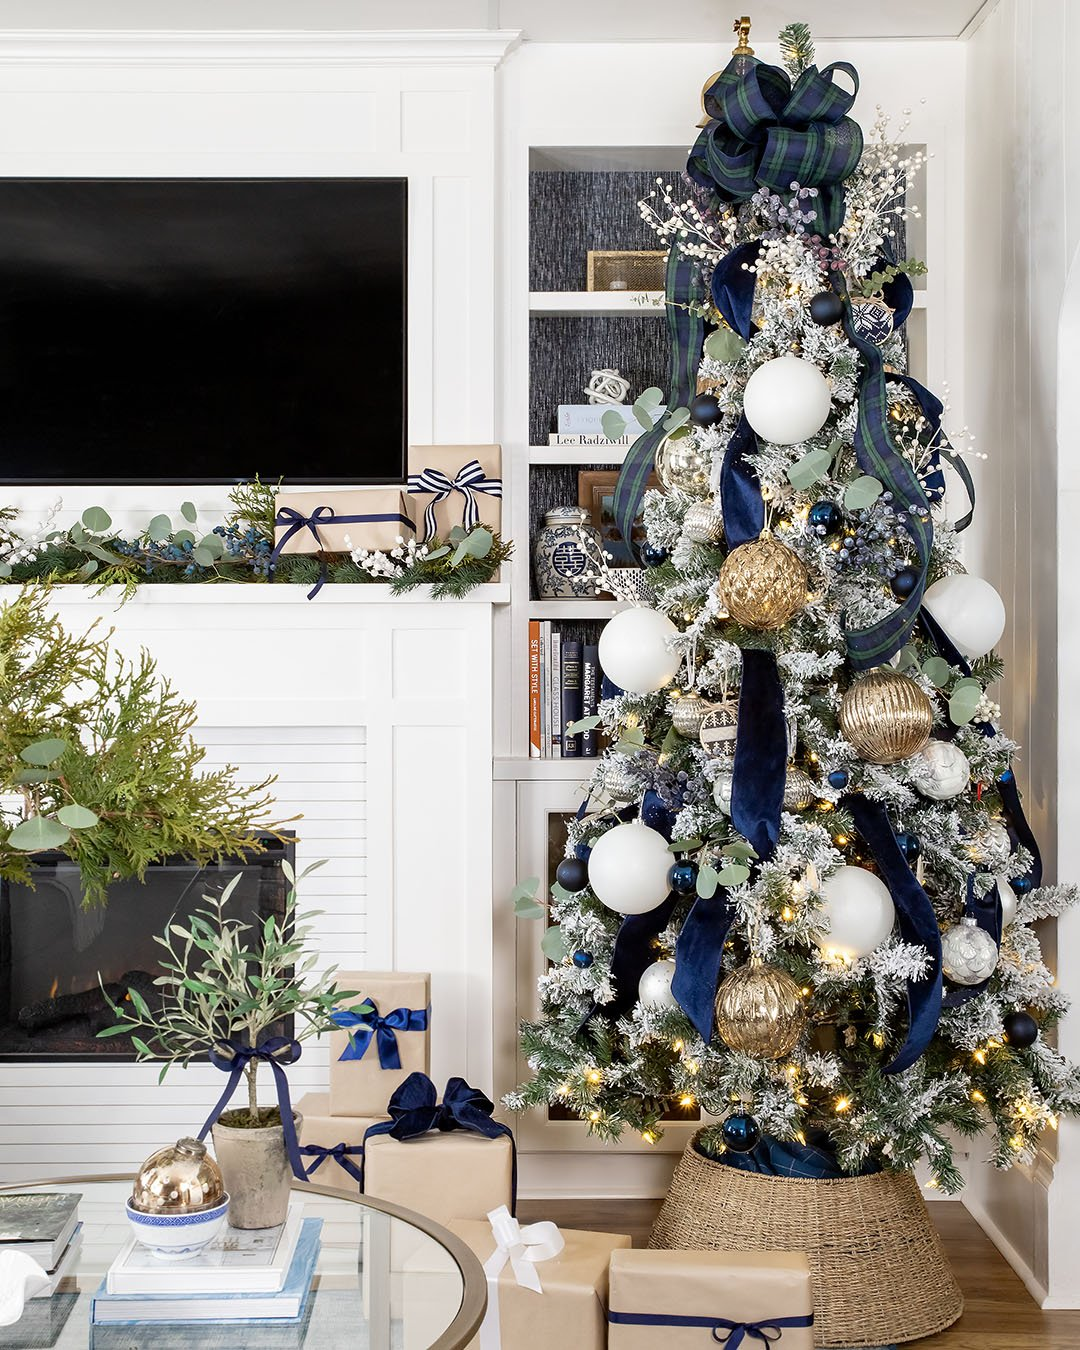 This is the eighth post in a year-long series all about taking baby steps to prepare for a stress-free Christmas. Here's what to do in October to get ready for Christmas!